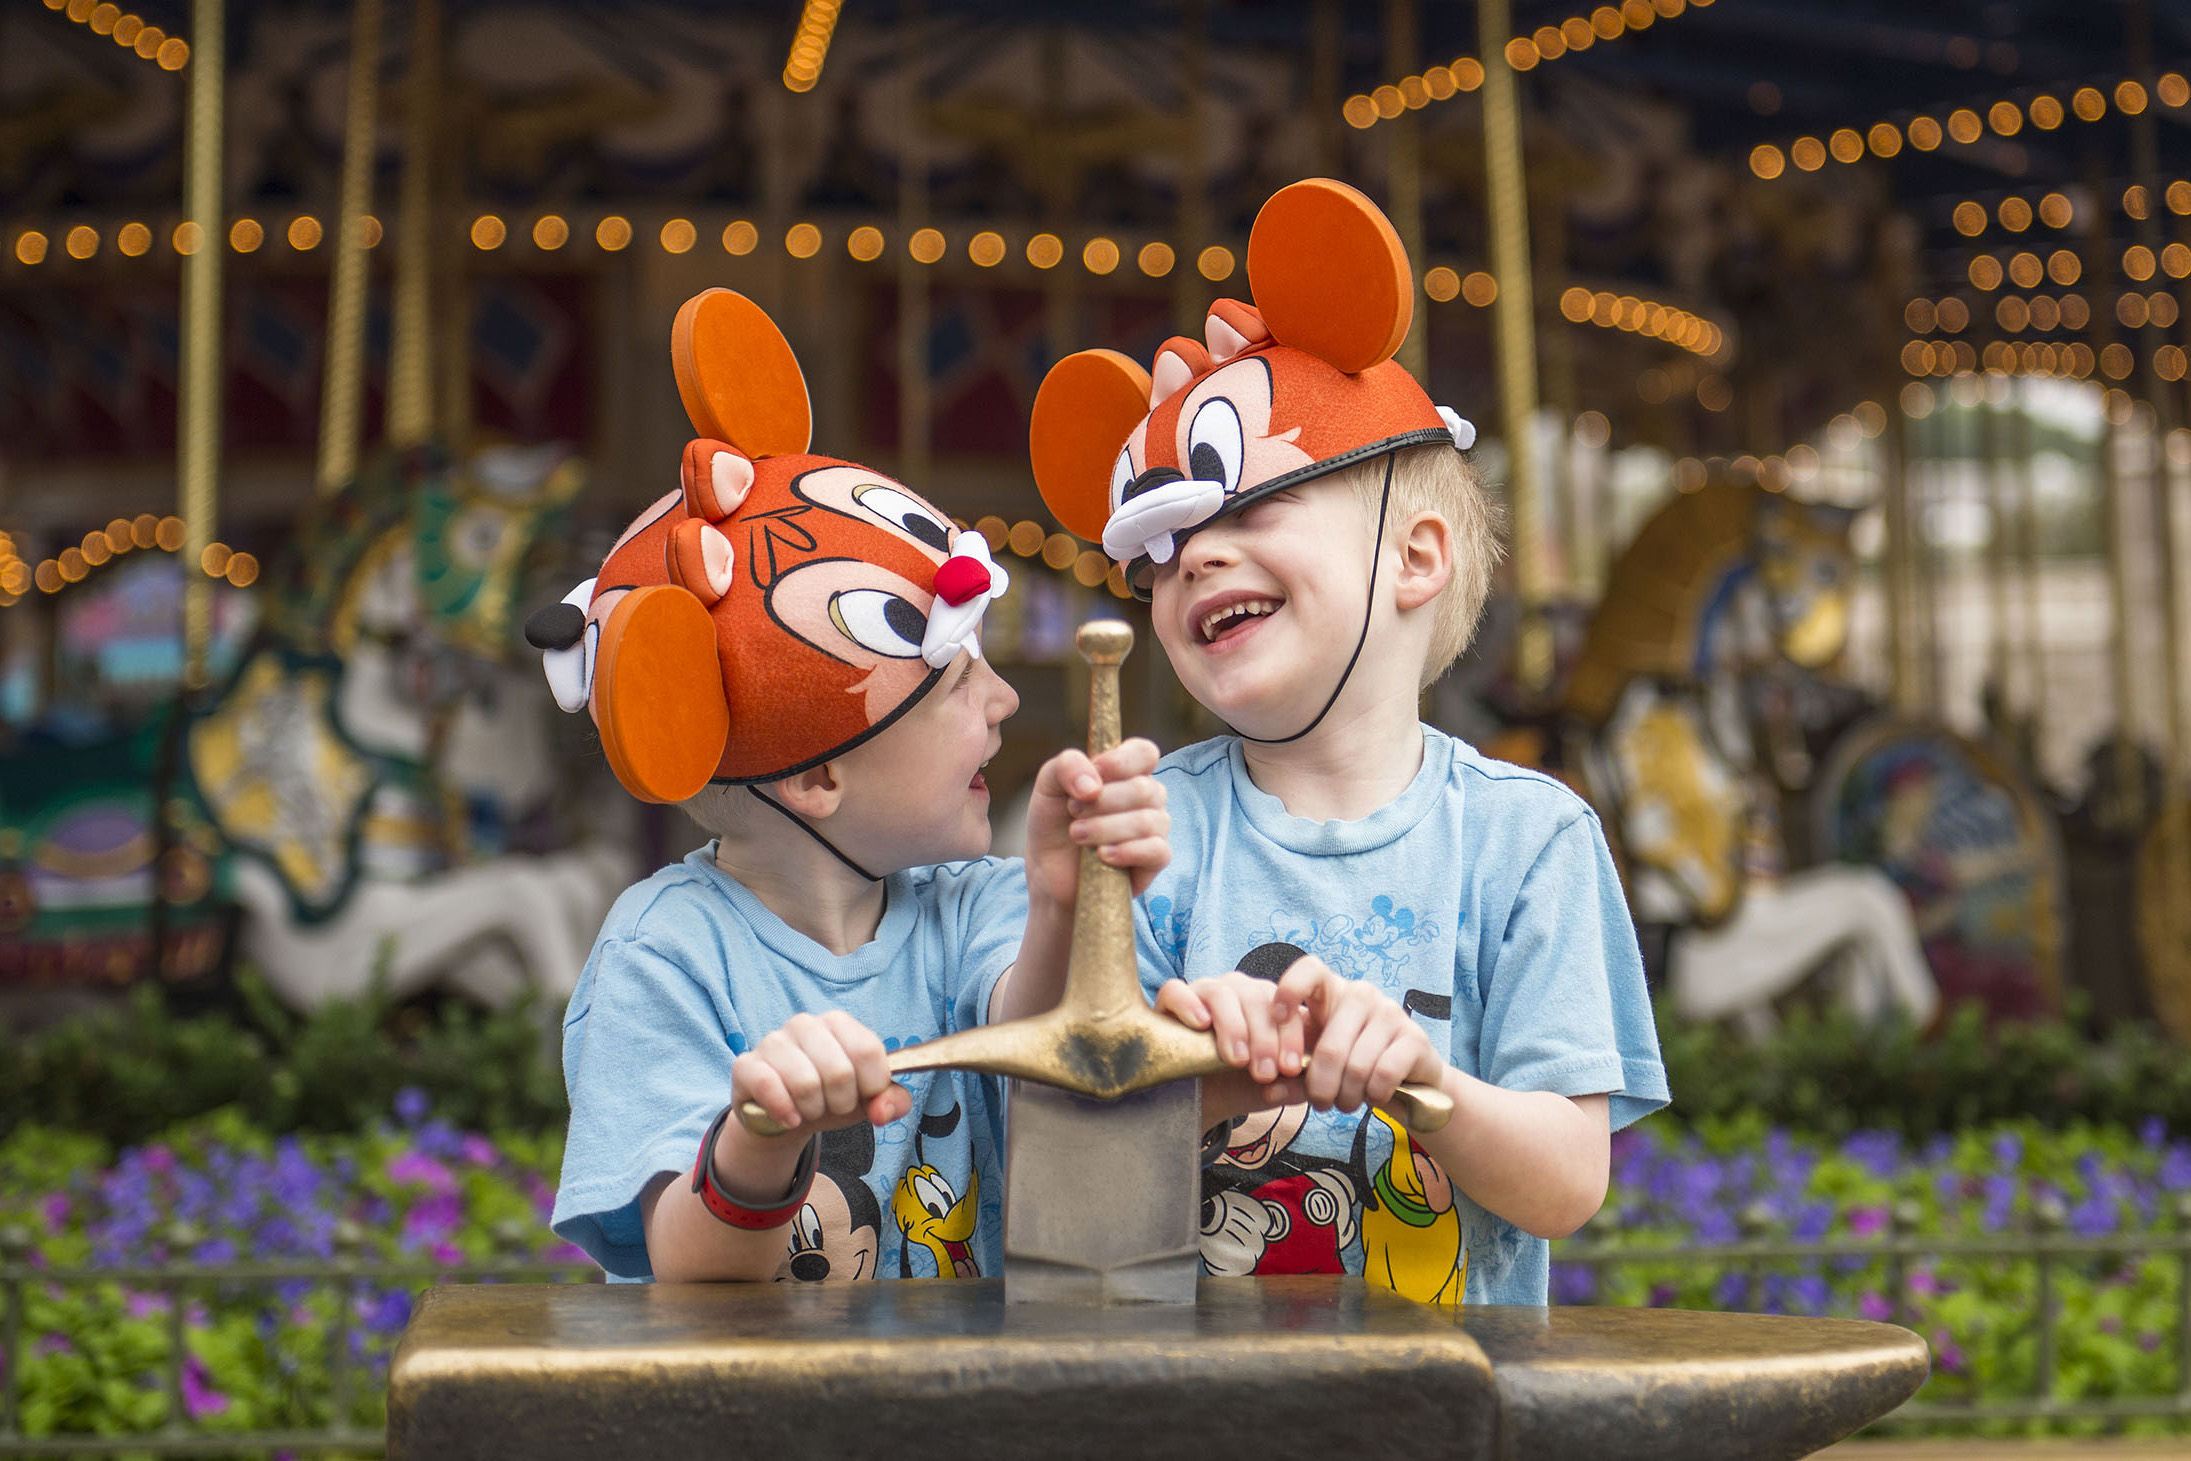 Can You Bring Outside Food into Disney World?